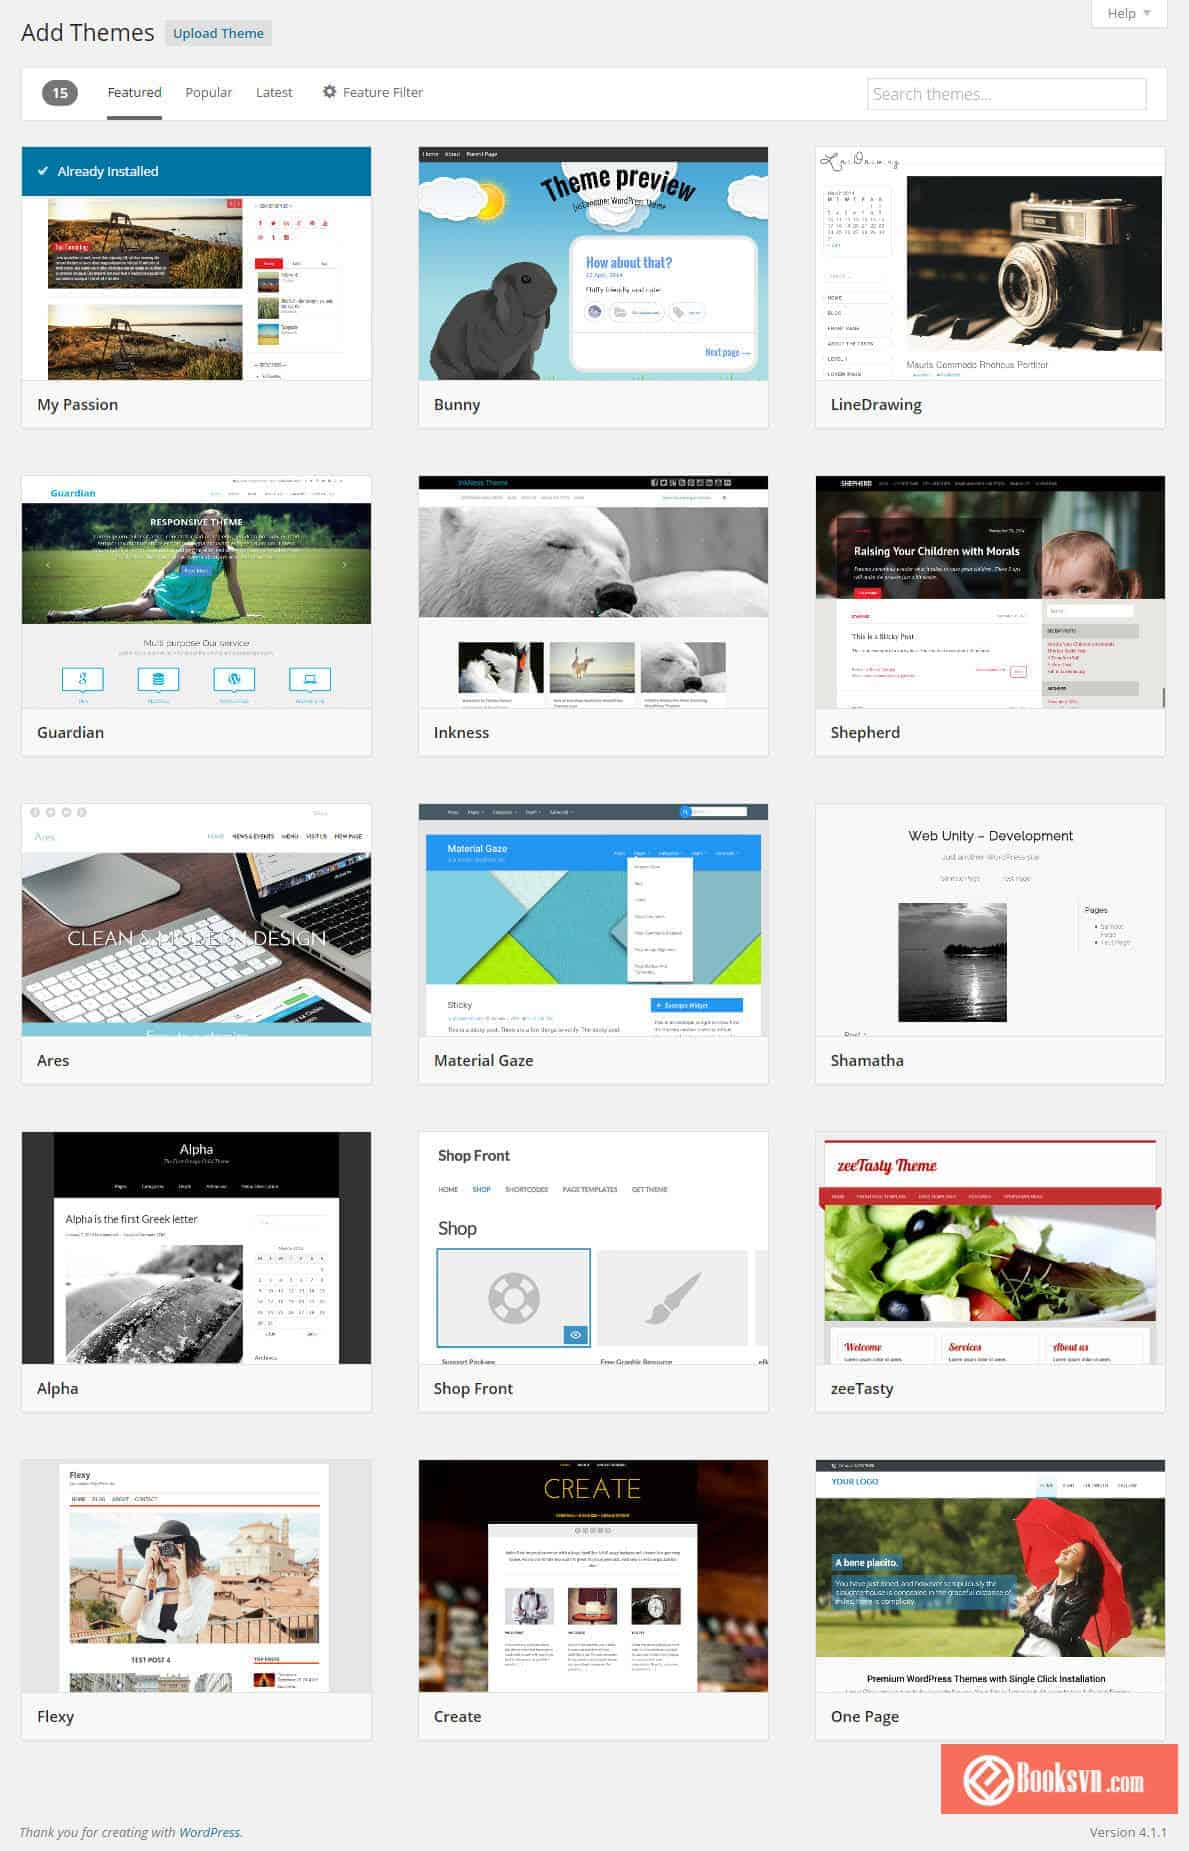 wordpress-appearance-add-themes